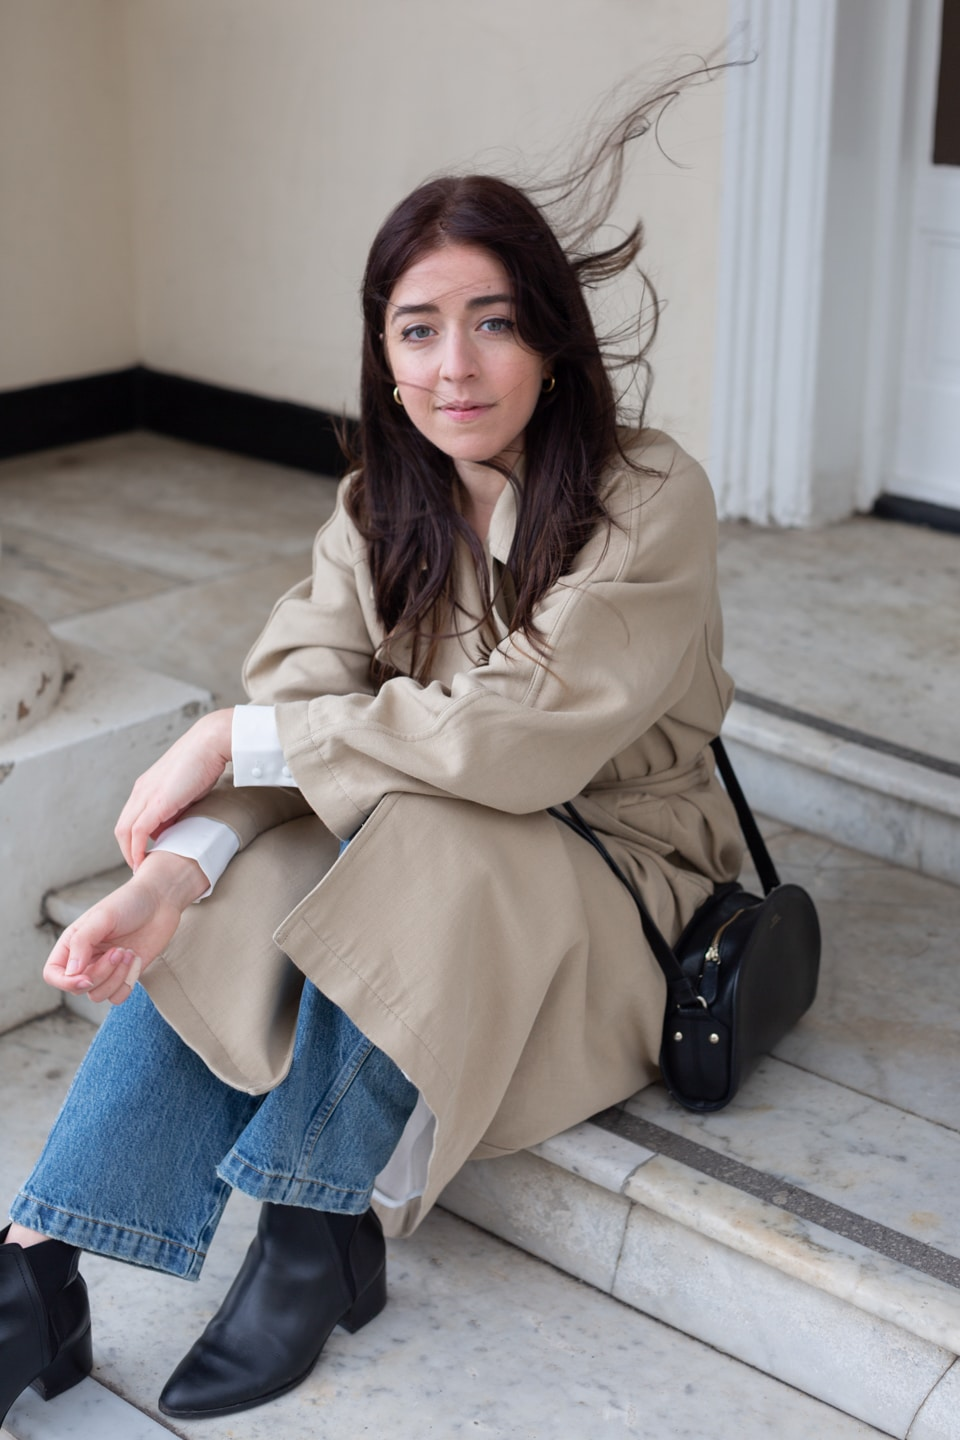 Besma smiling wearing trench coat, crossbody bag, jeans, boots